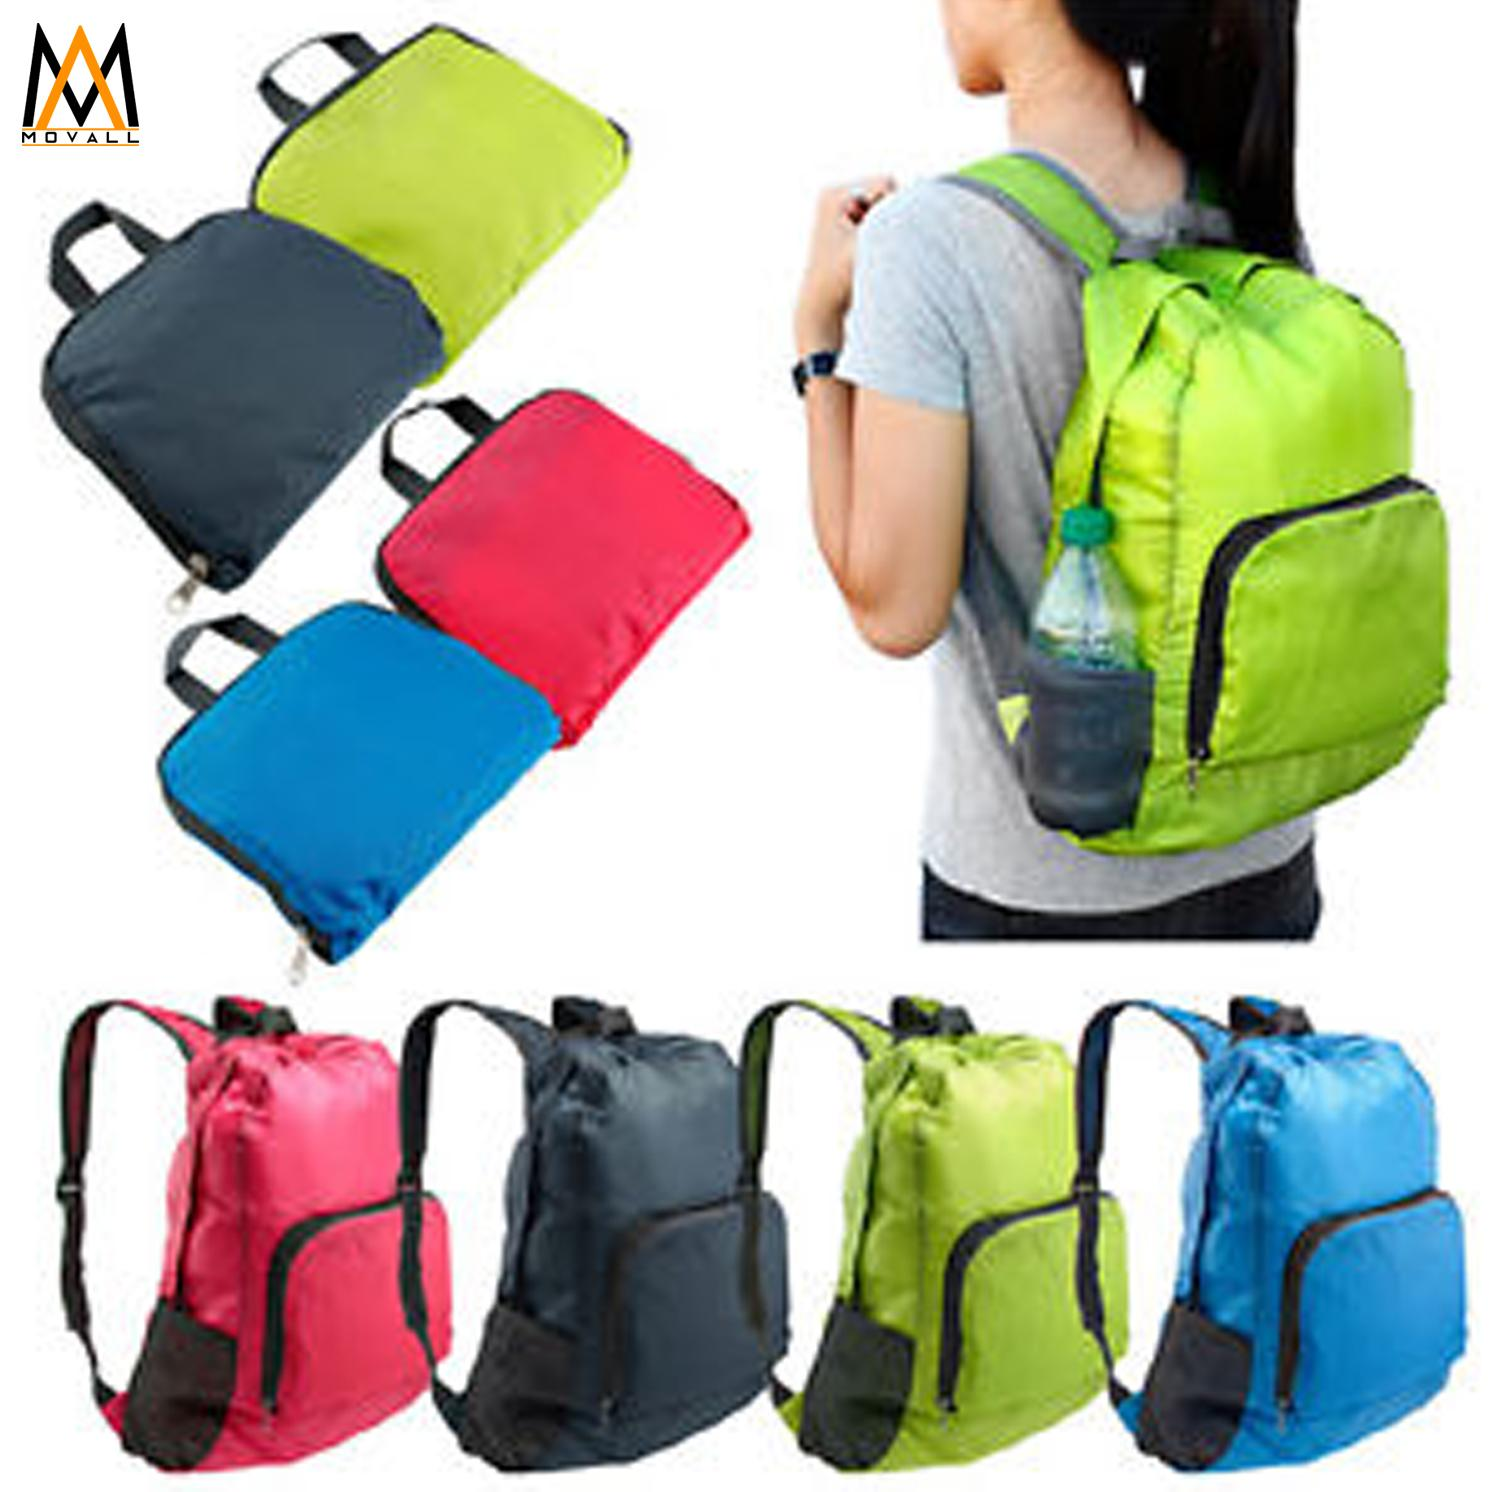 Lightweight Nylon Travel Backpack Waterproof Foldable Bag